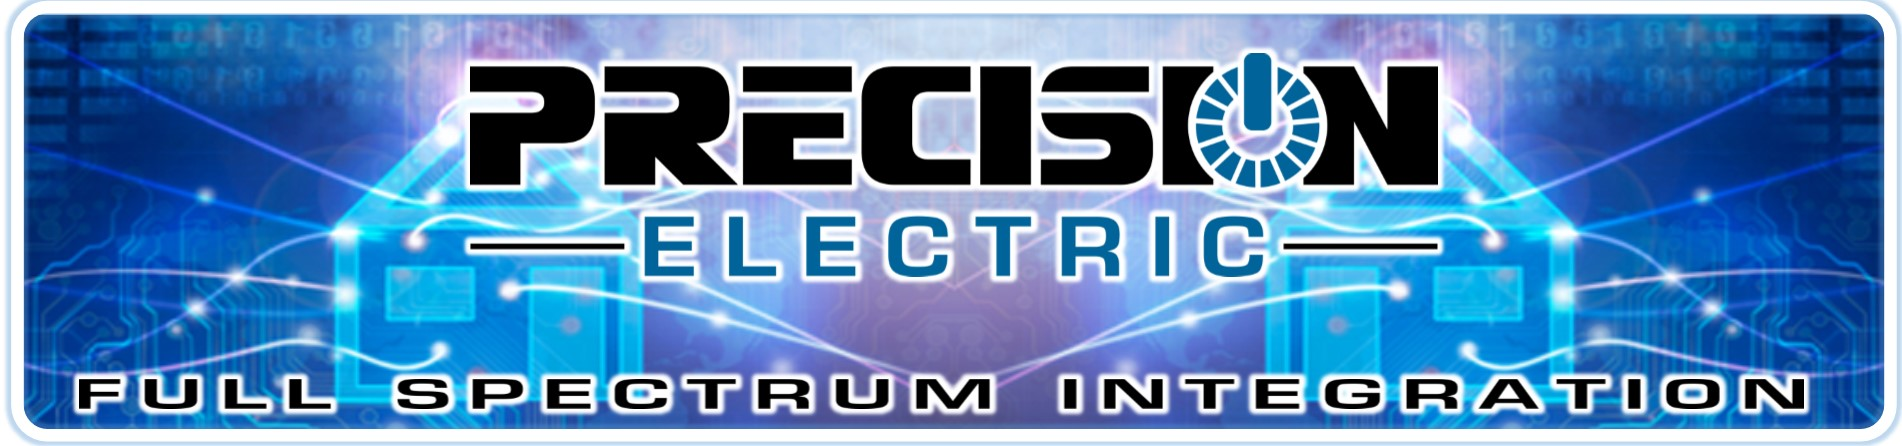 Precision Electric | Nevada County Electrical & Automation Services